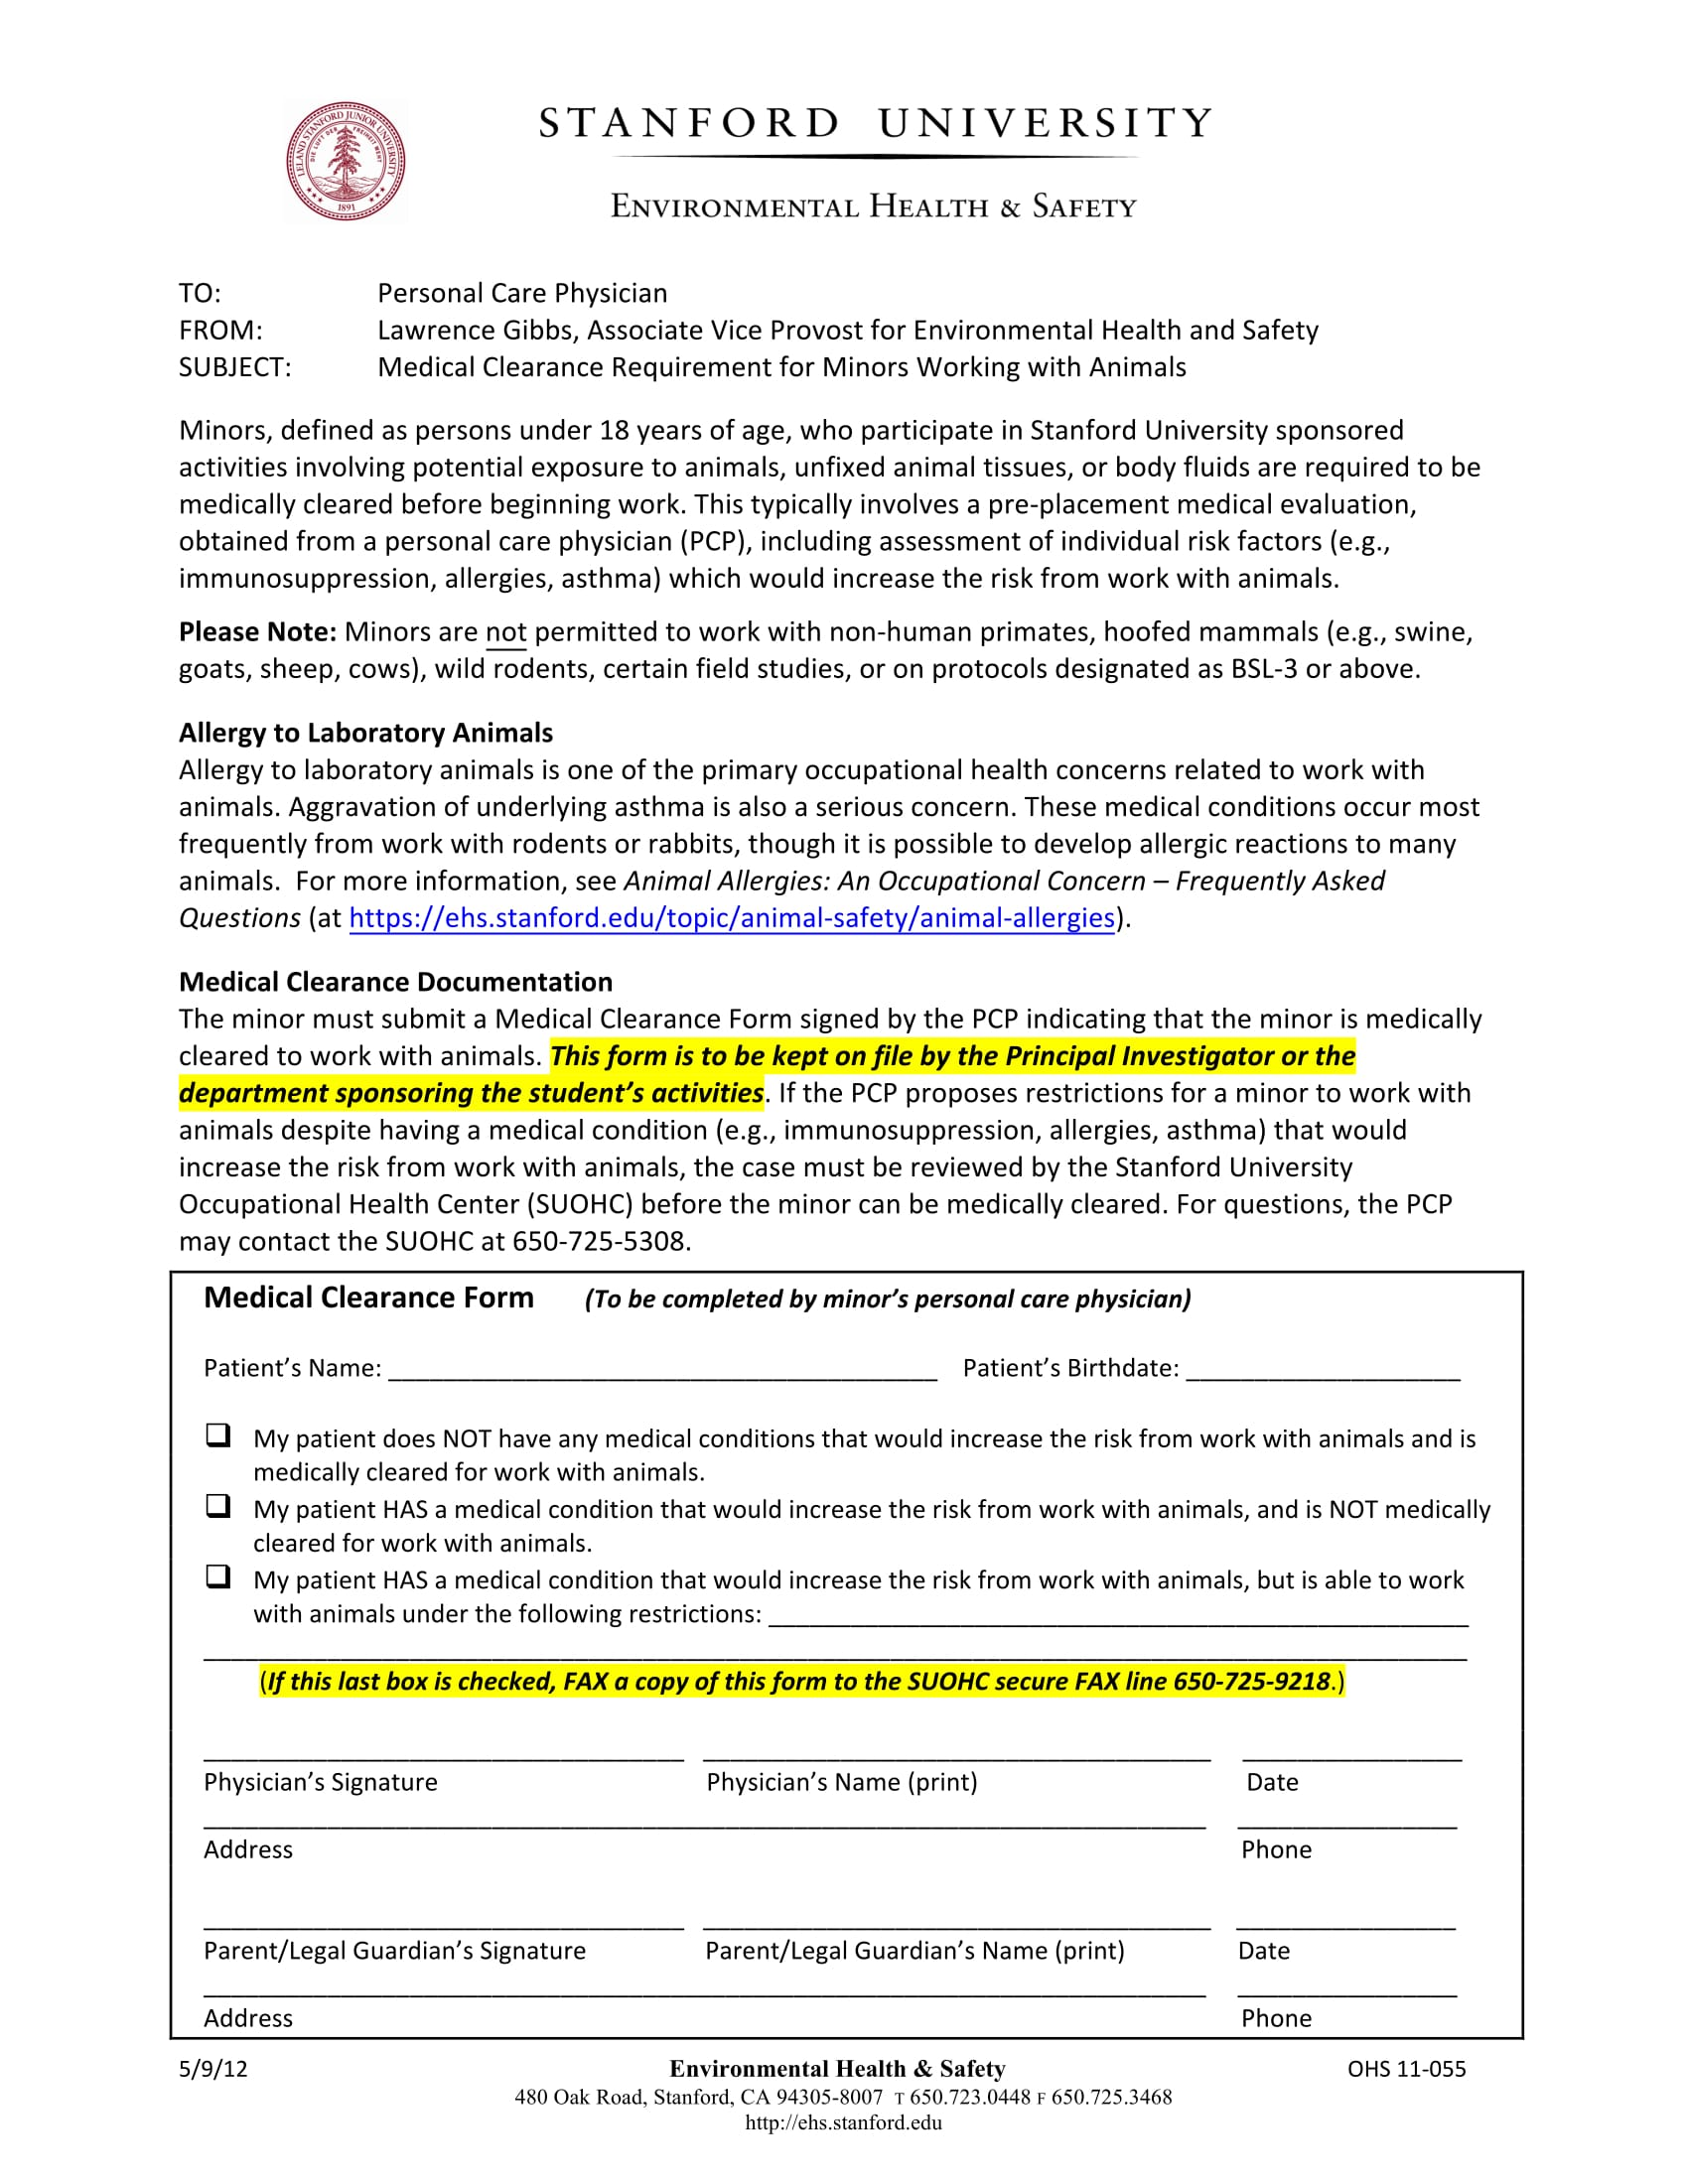 minor medical clearance form 1